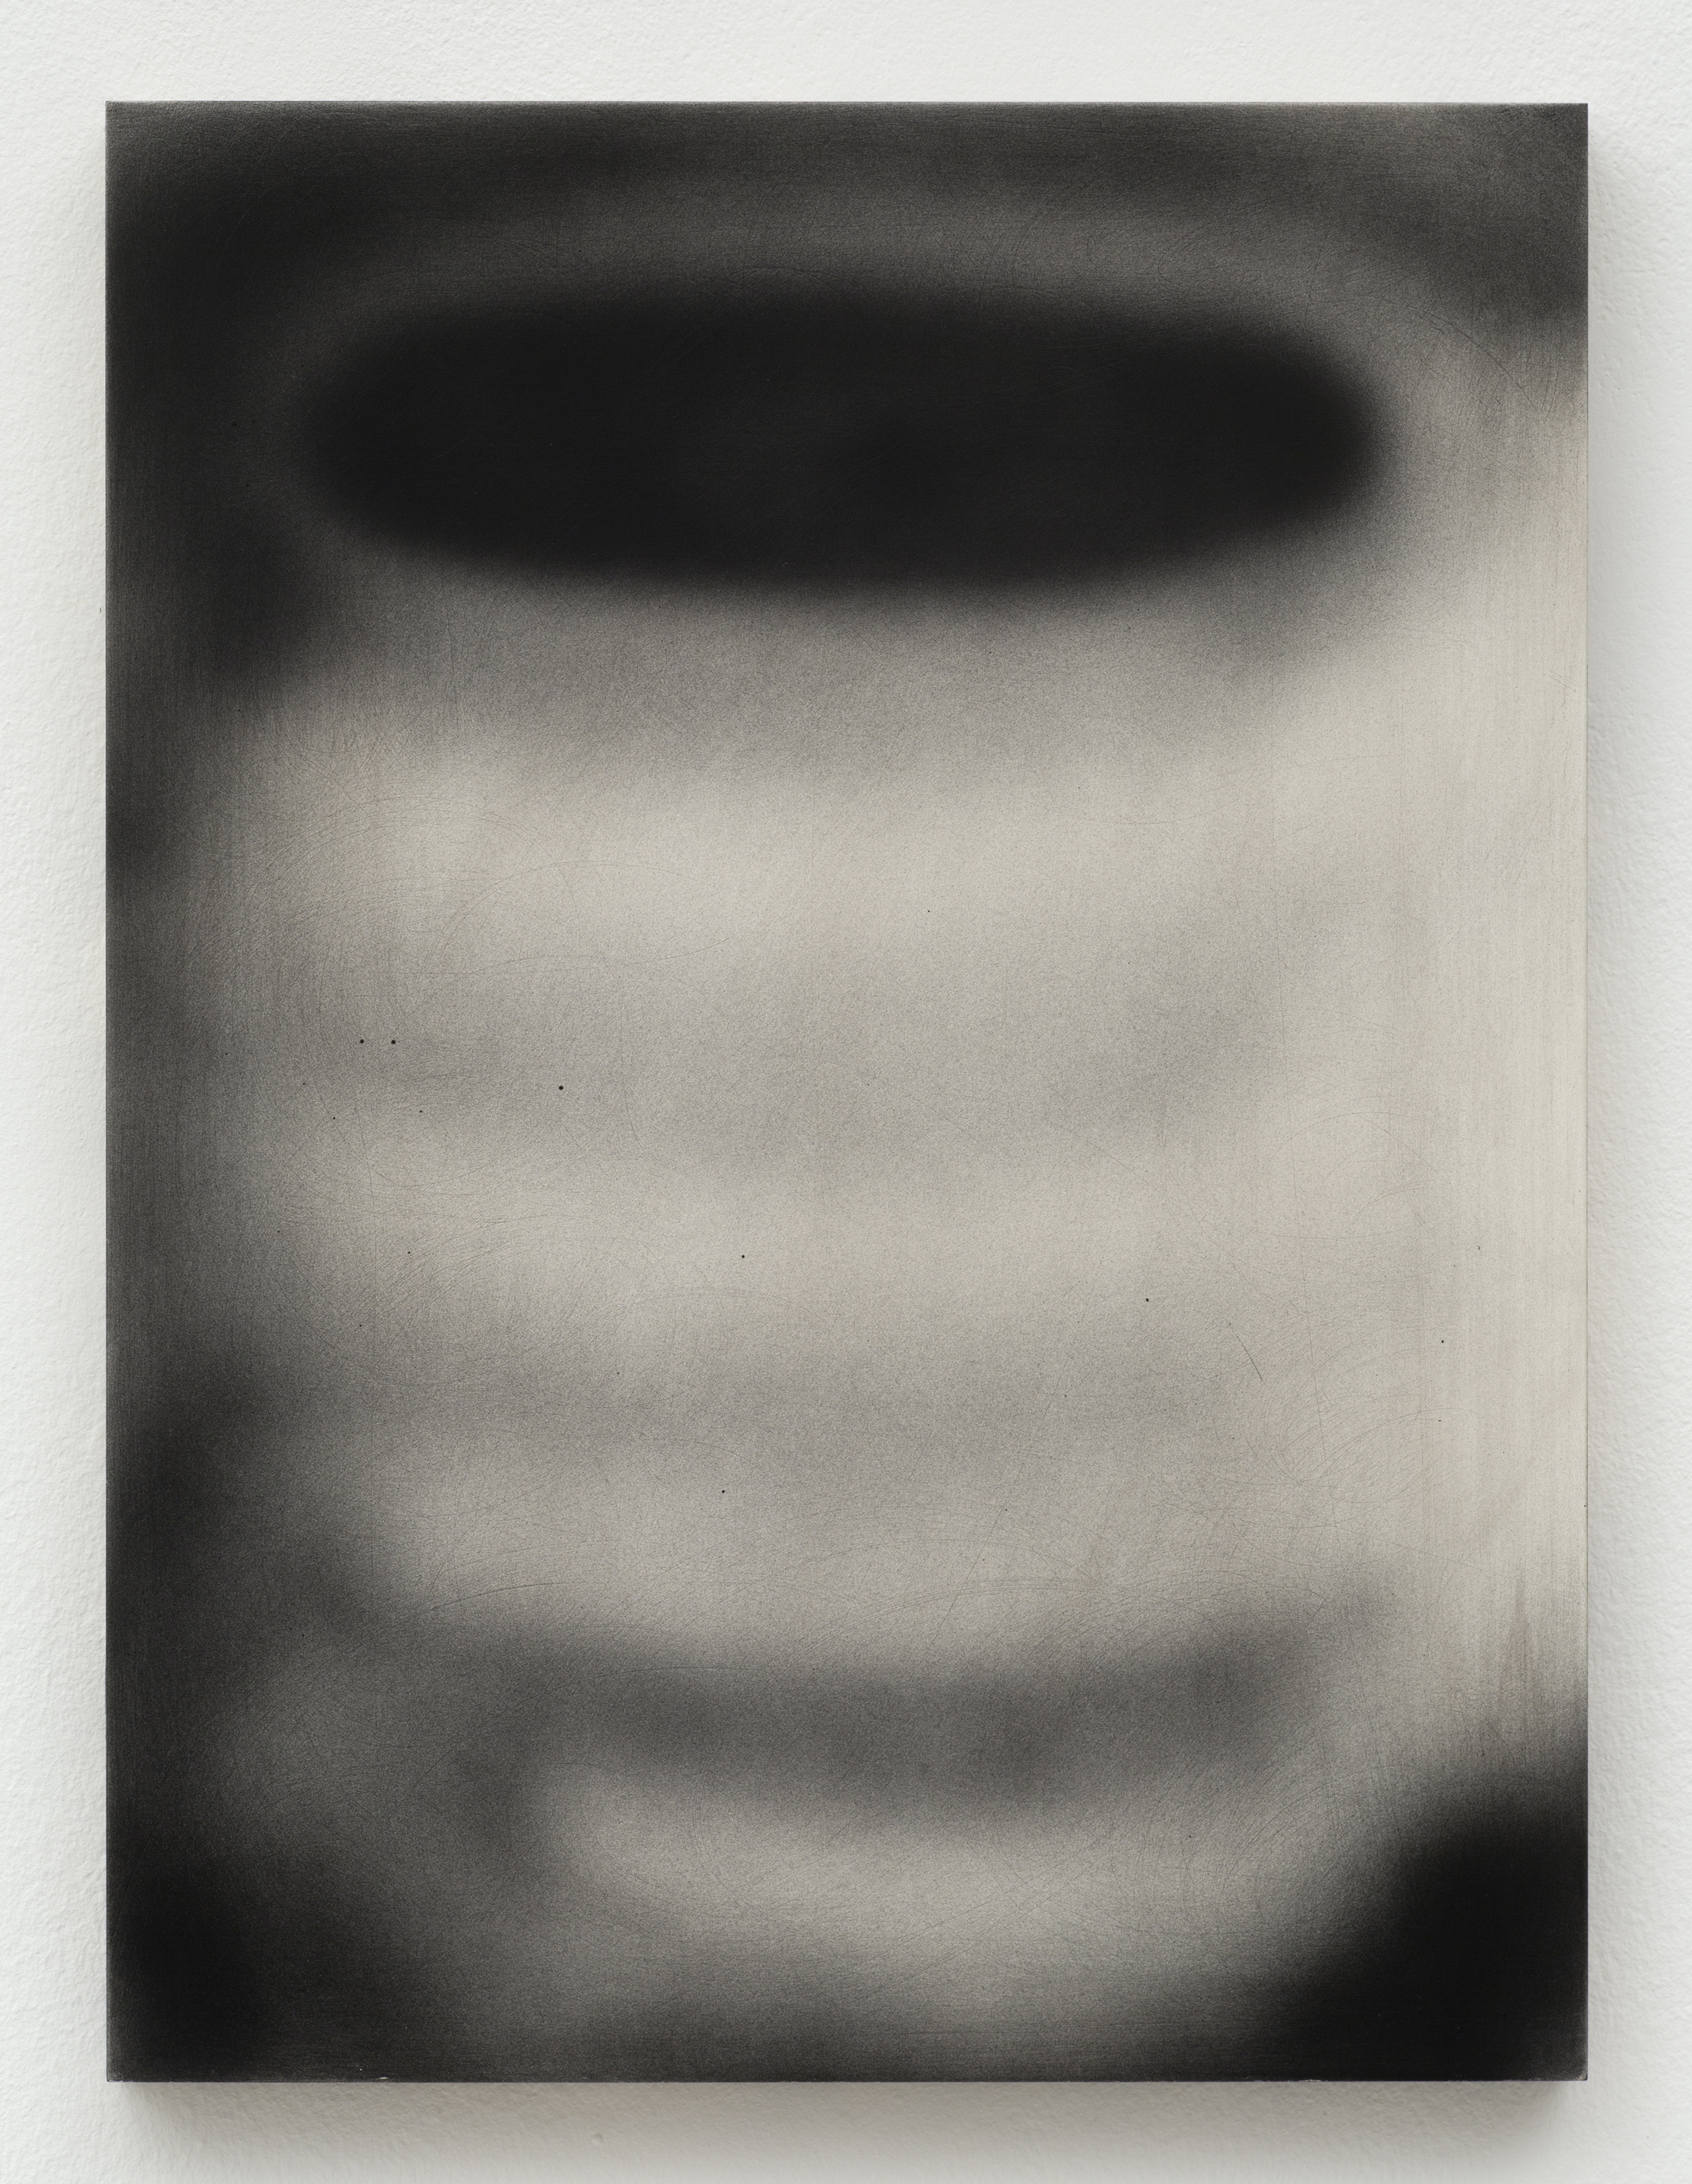 Phoebe Unwin,  Cup , 2015, Indian ink on kaolin clay on board, 40.7 x 30.6 cm. Image courtesy of Wilkinson Gallery.